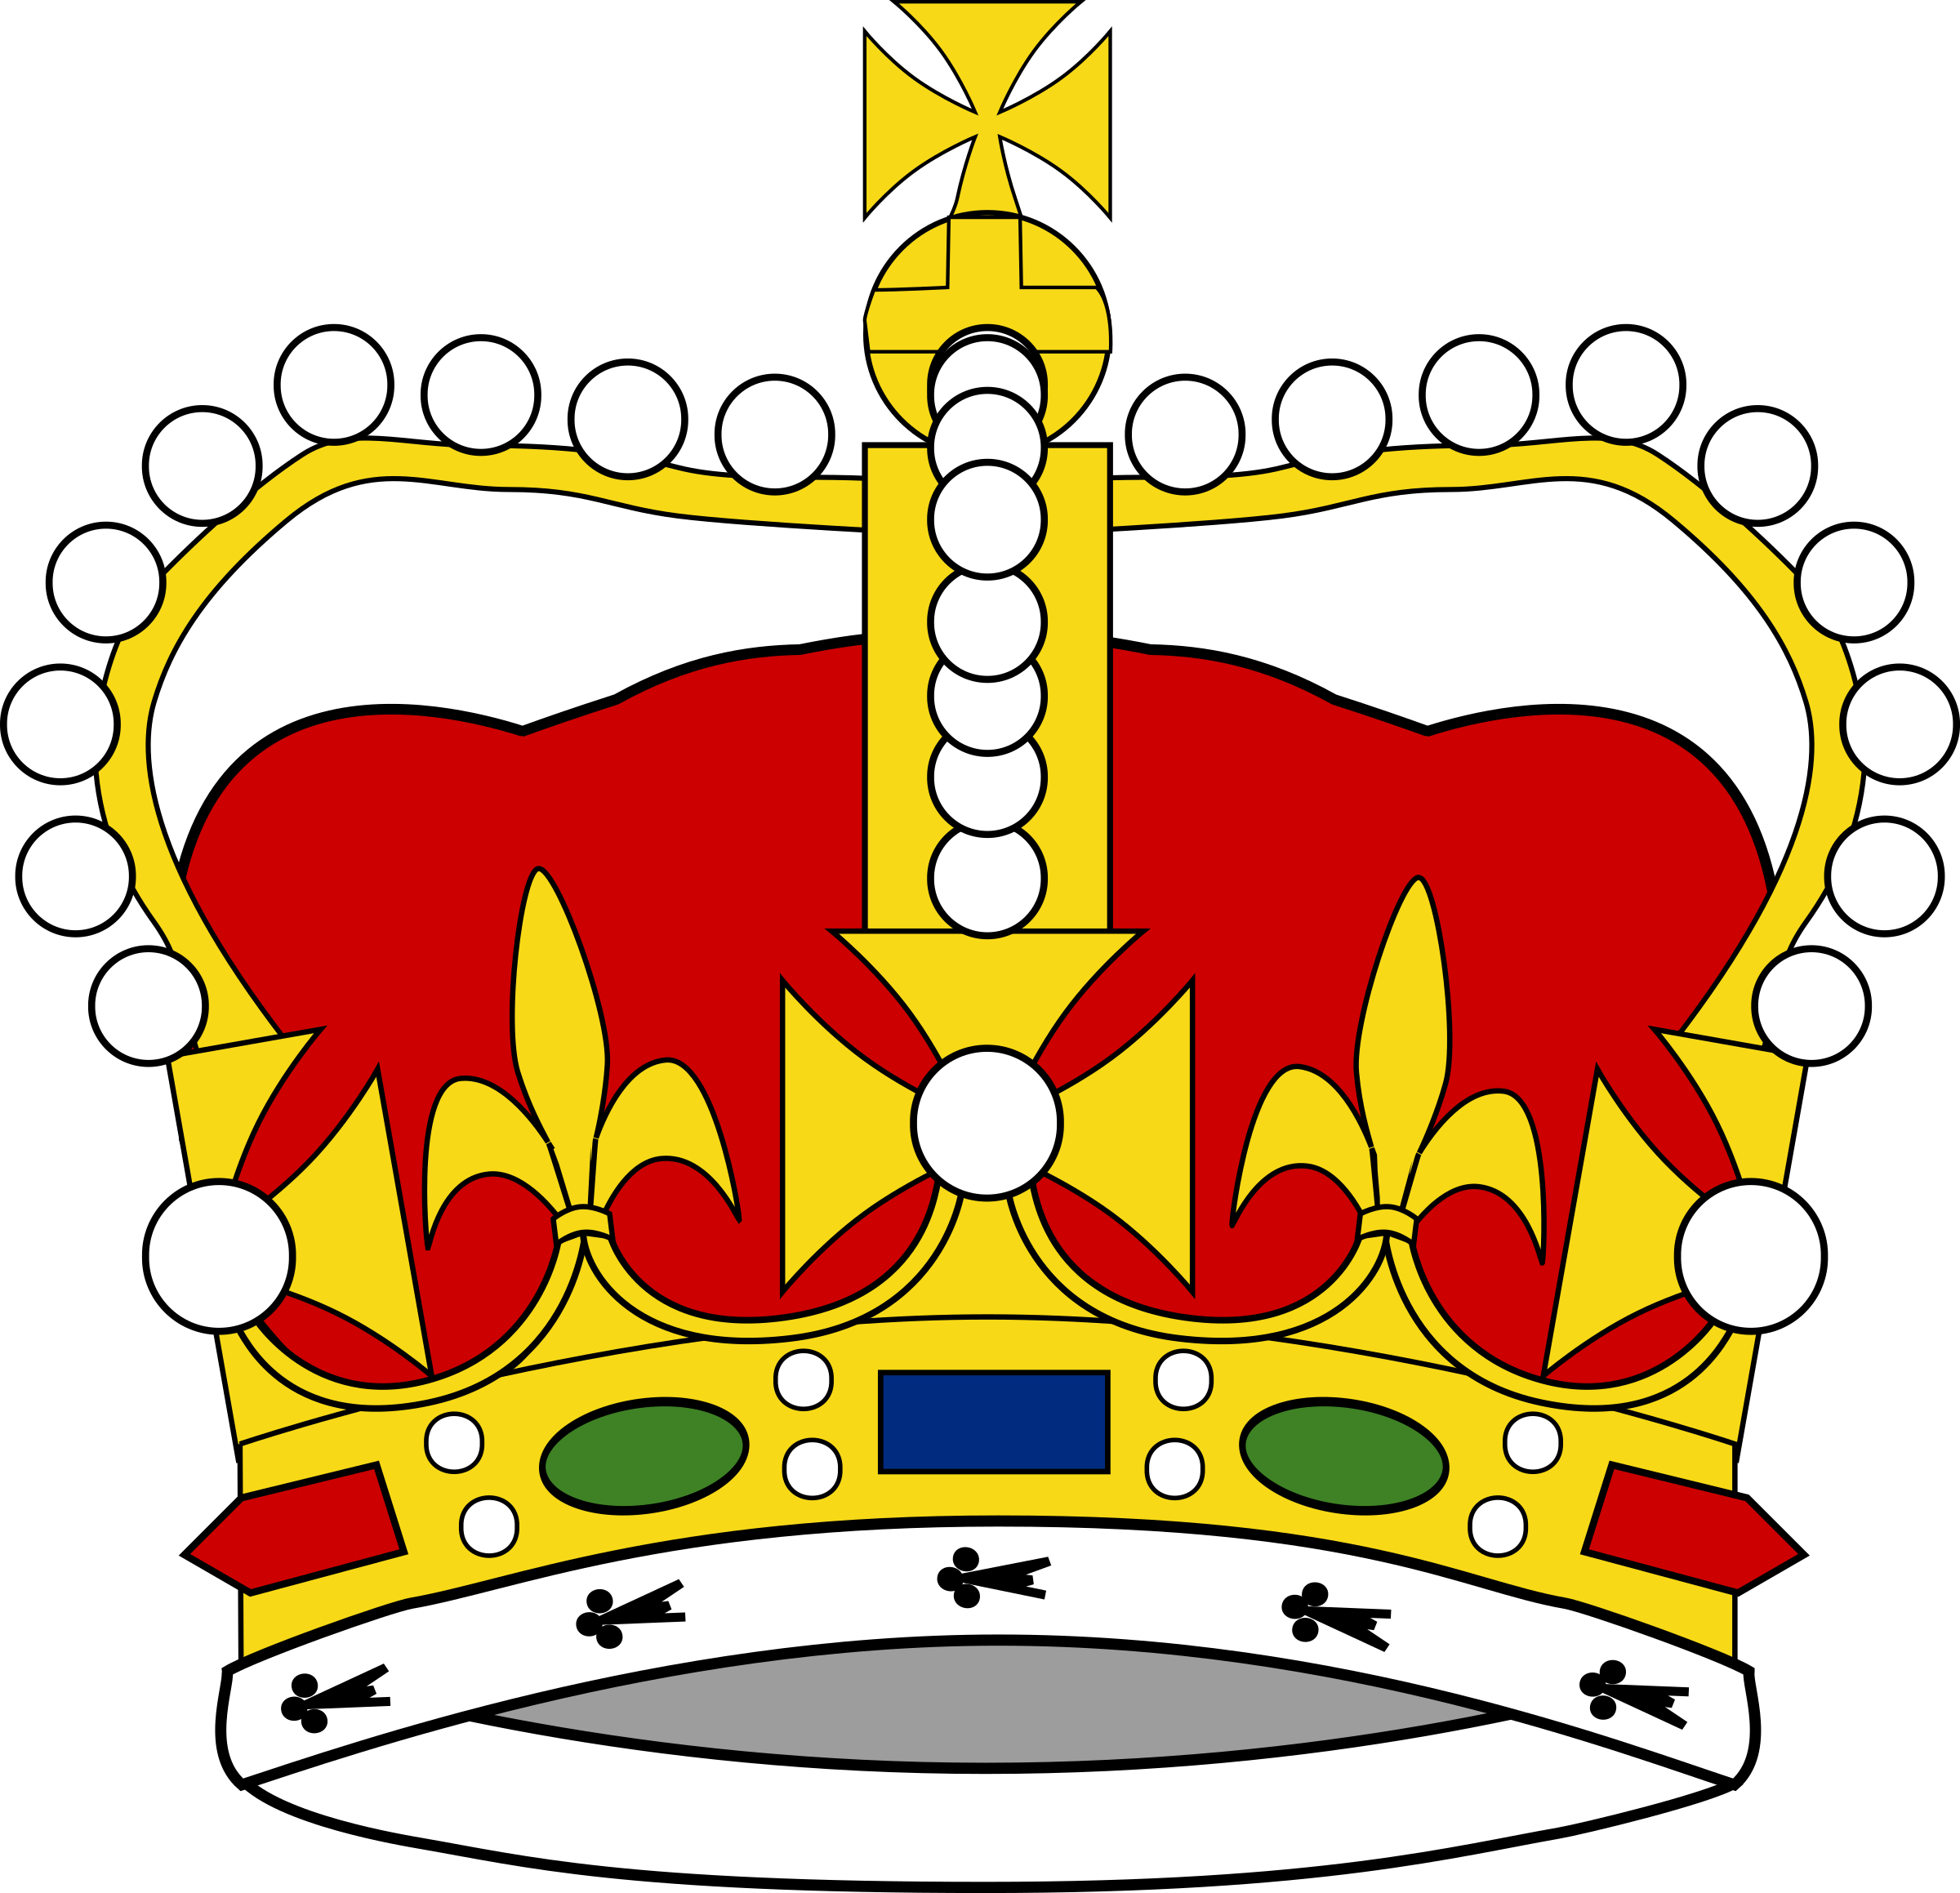 liftarn-Crown-of-Saint-Edward.png